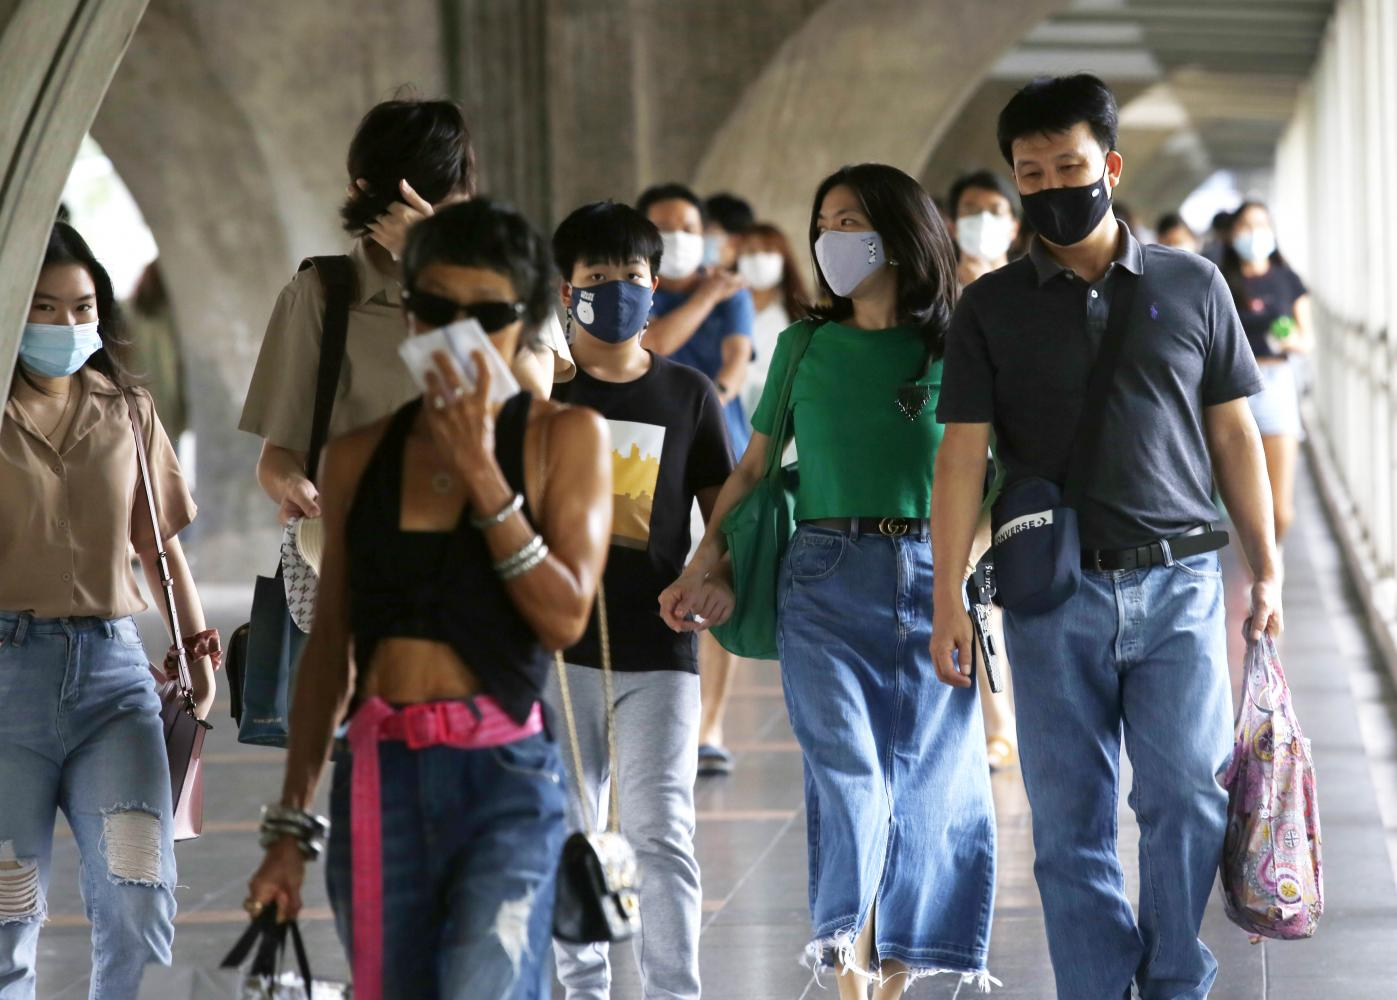 People wear facial masks to protect against Covid-19 while on the skywalk connecting Ratchaprasong intersection and CentralWorld to Siam skytrain station.Apichit Jinakul